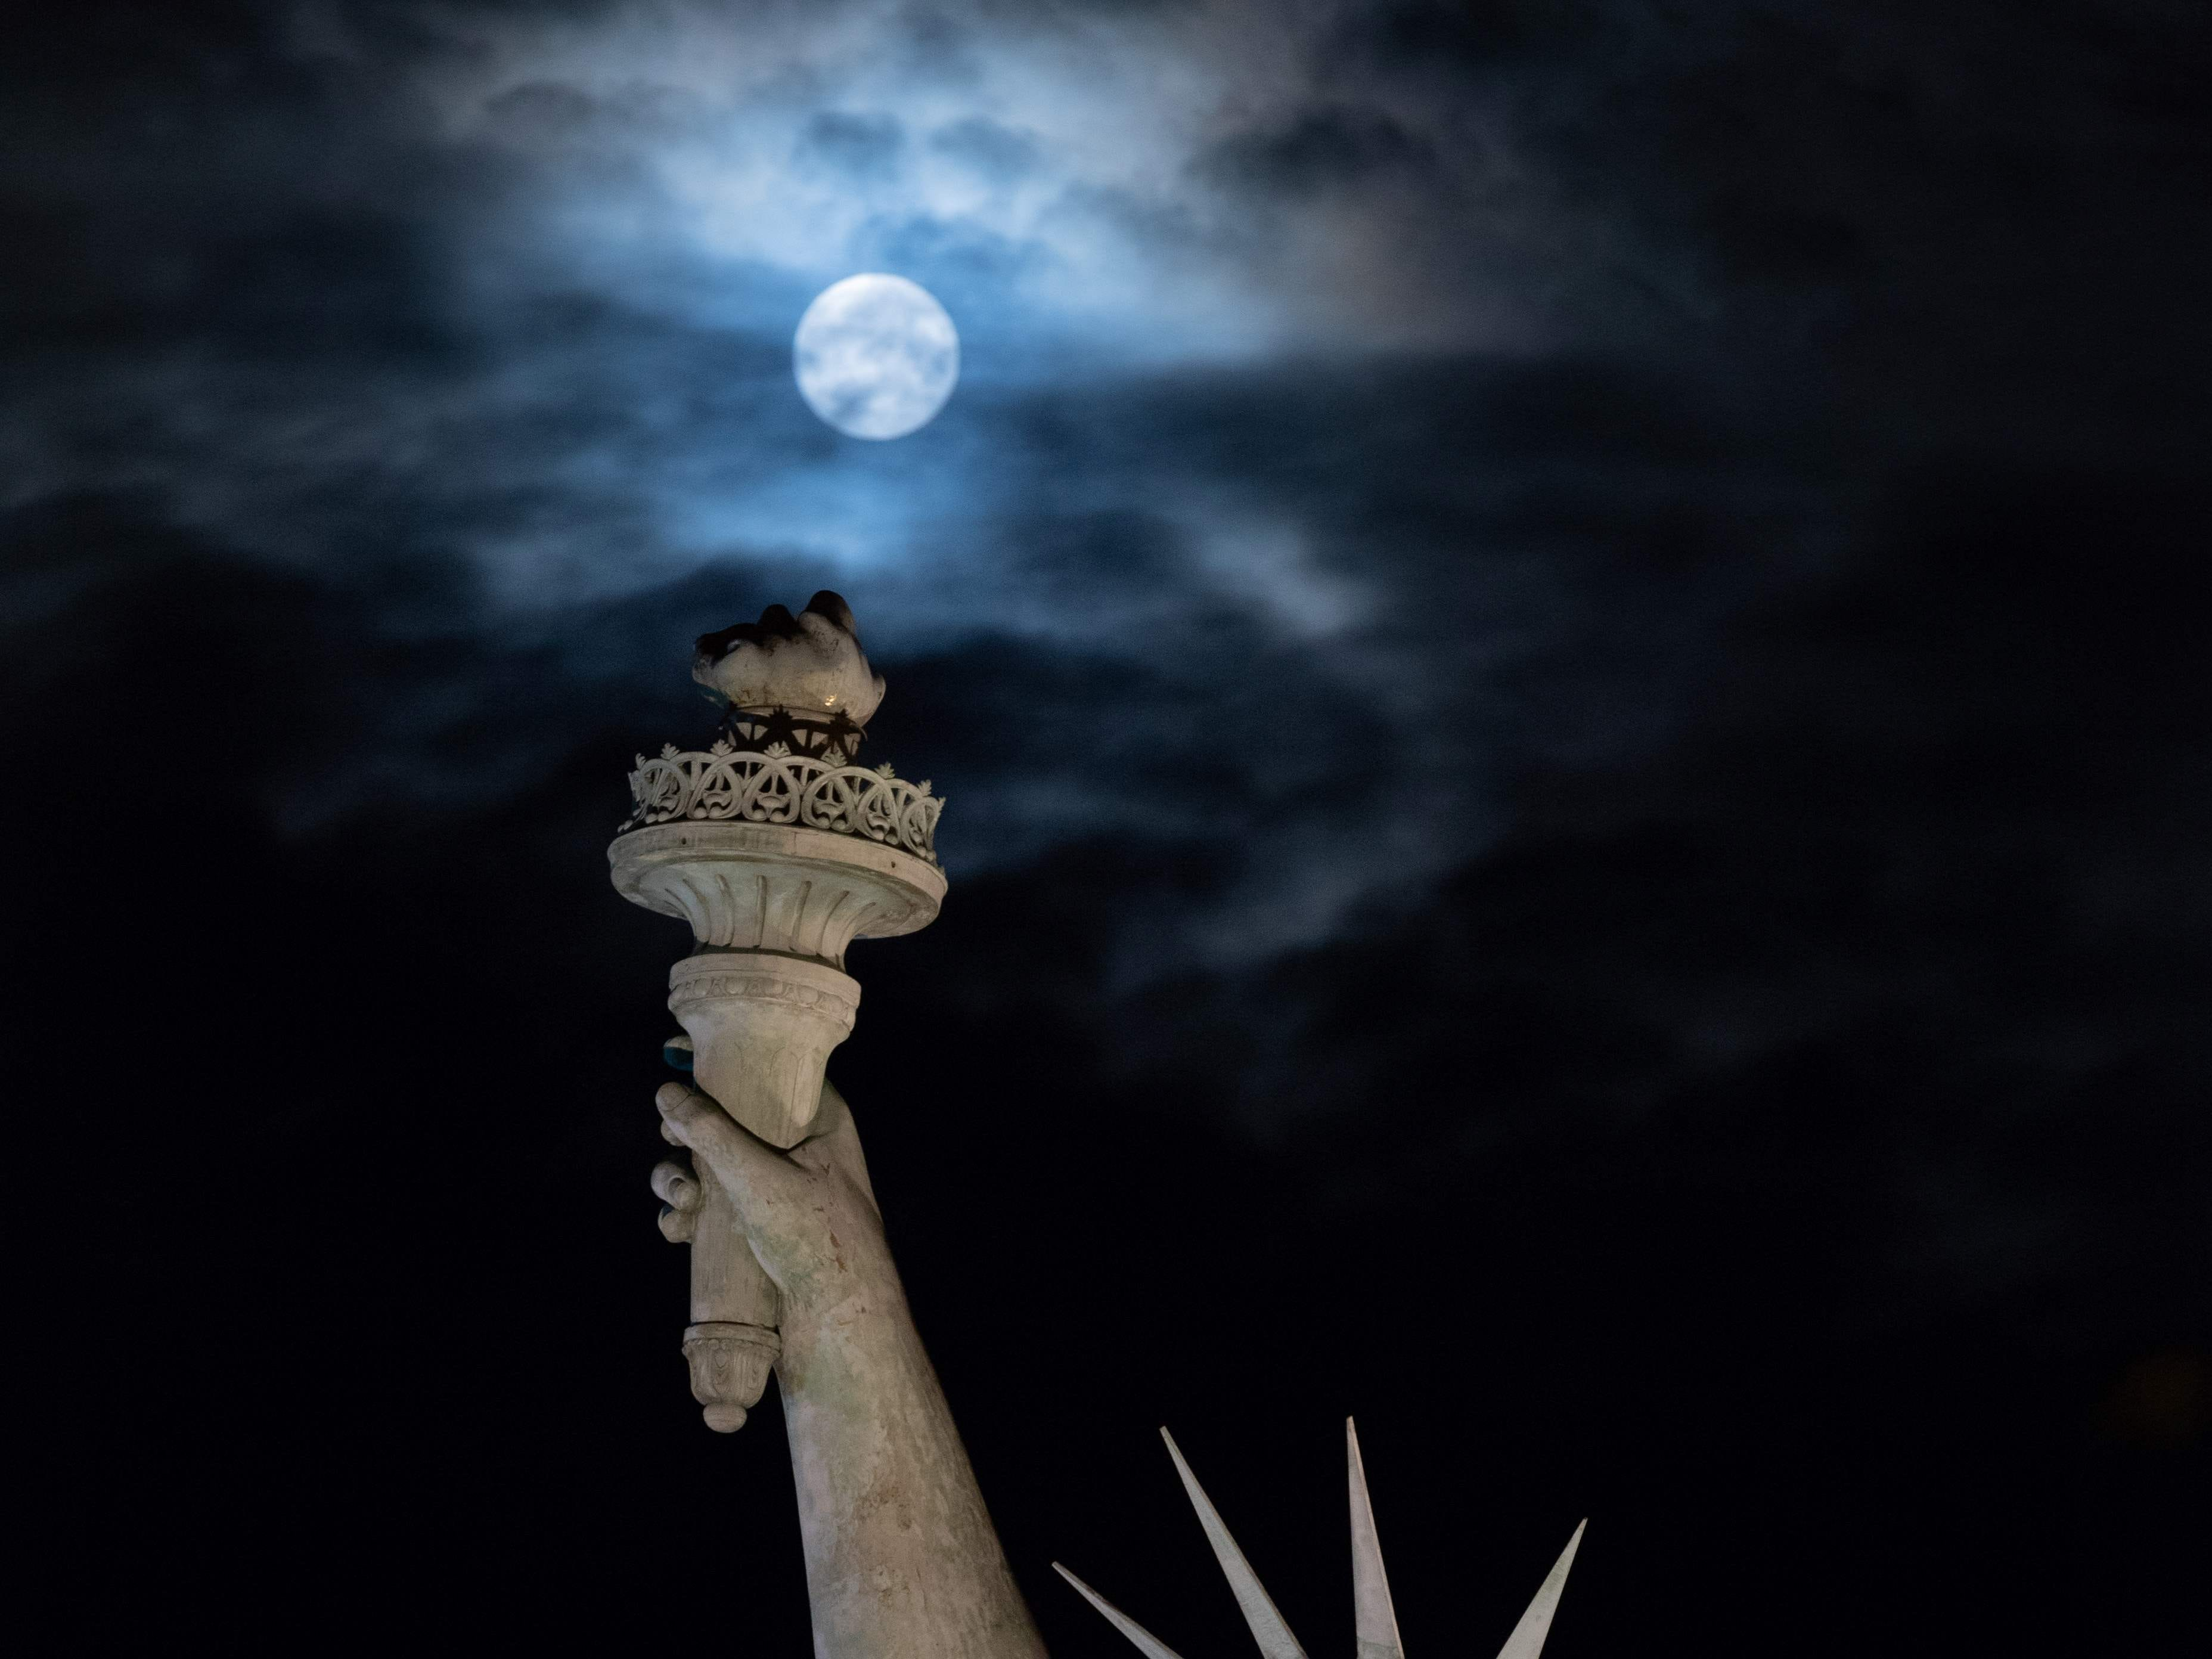 The full moon rises on Aug. 26, 2018, over the replica of the Statue of Liberty in Colmar, France, birth city of sculptor Frederic Bartholti.